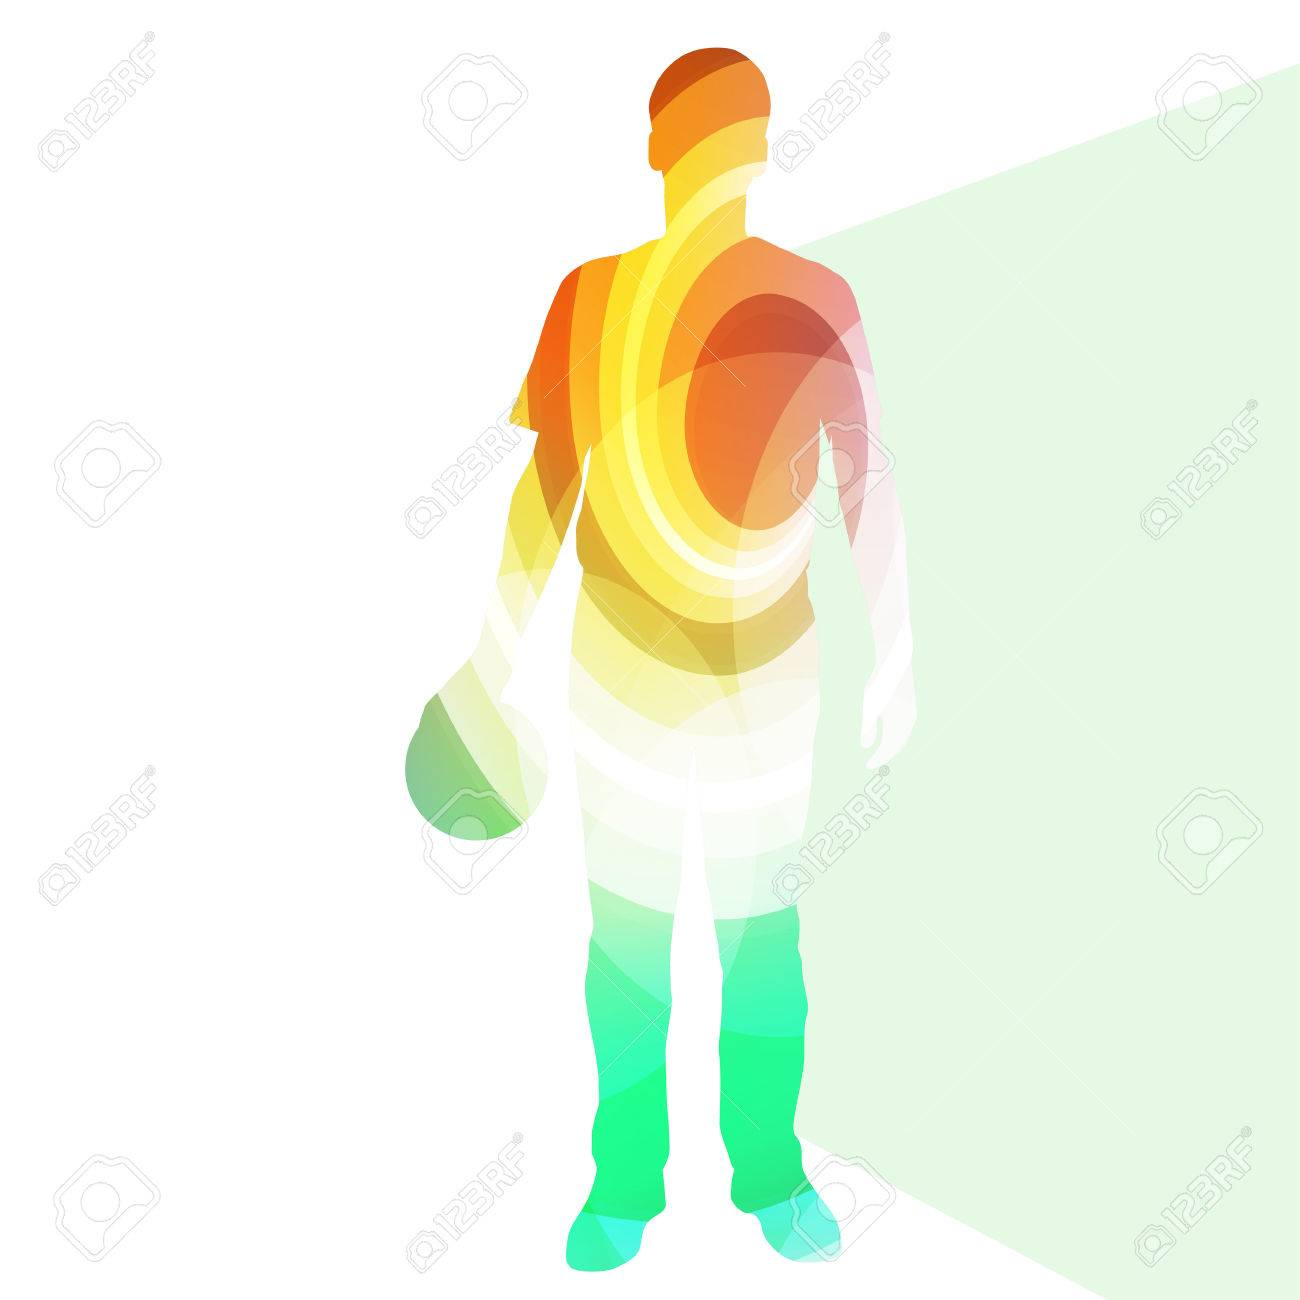 man bowler bowling silhouette illustration vector background